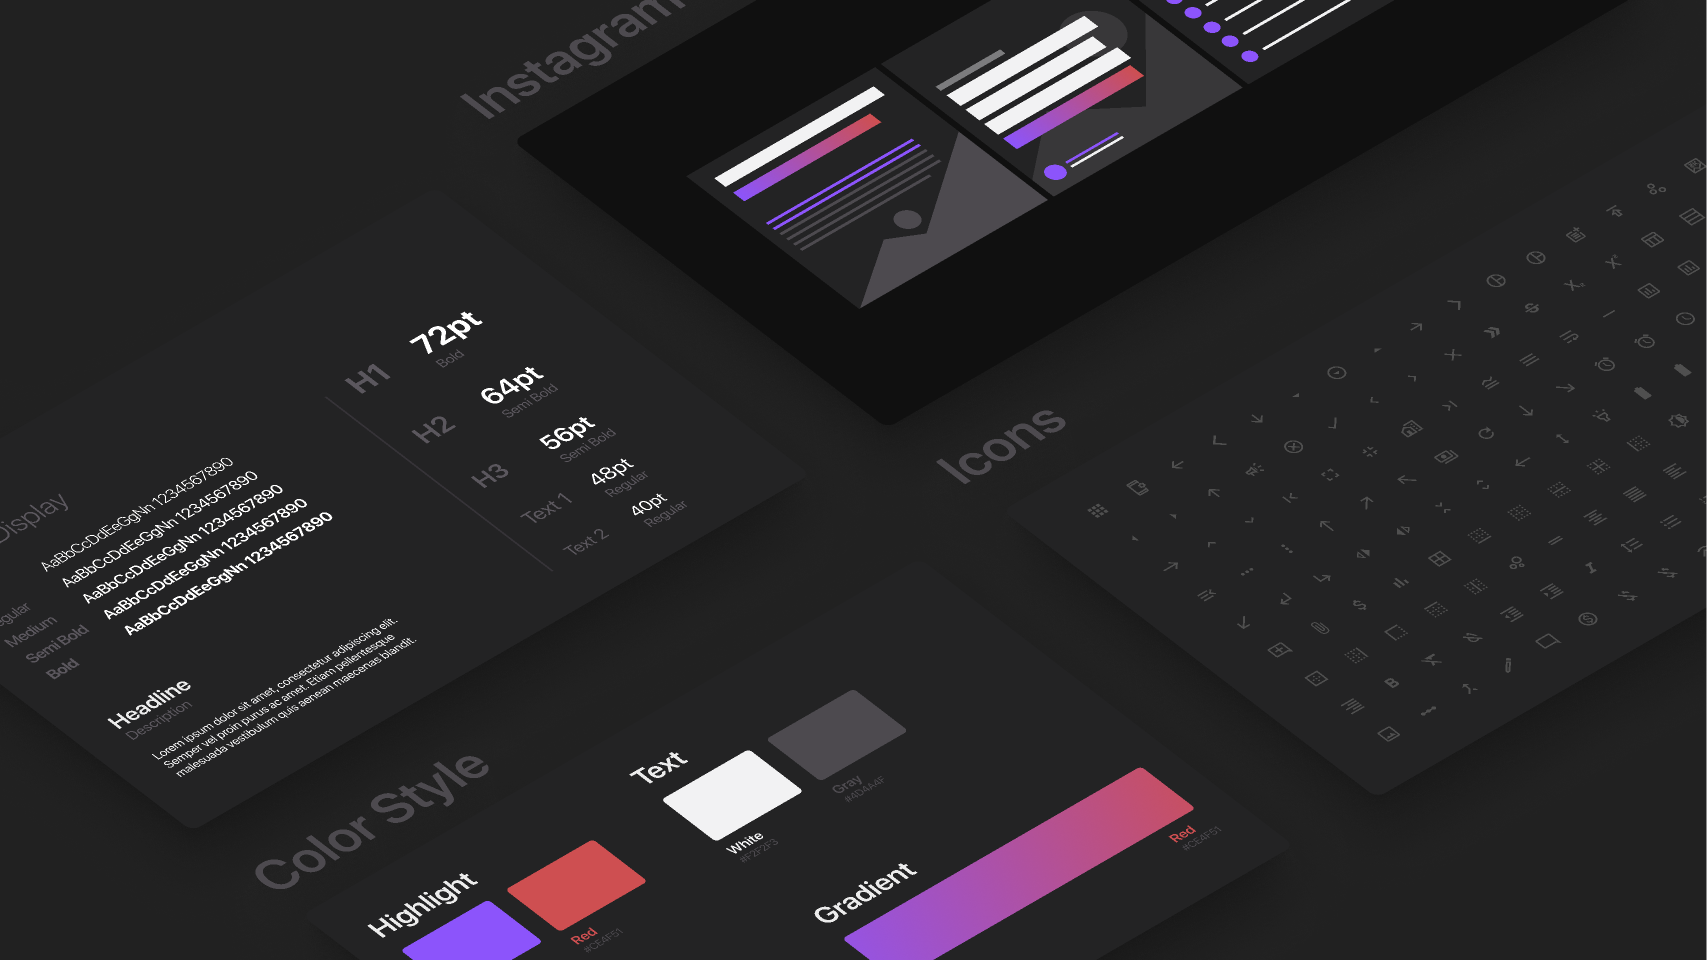 Design Style Guide - Template Figma